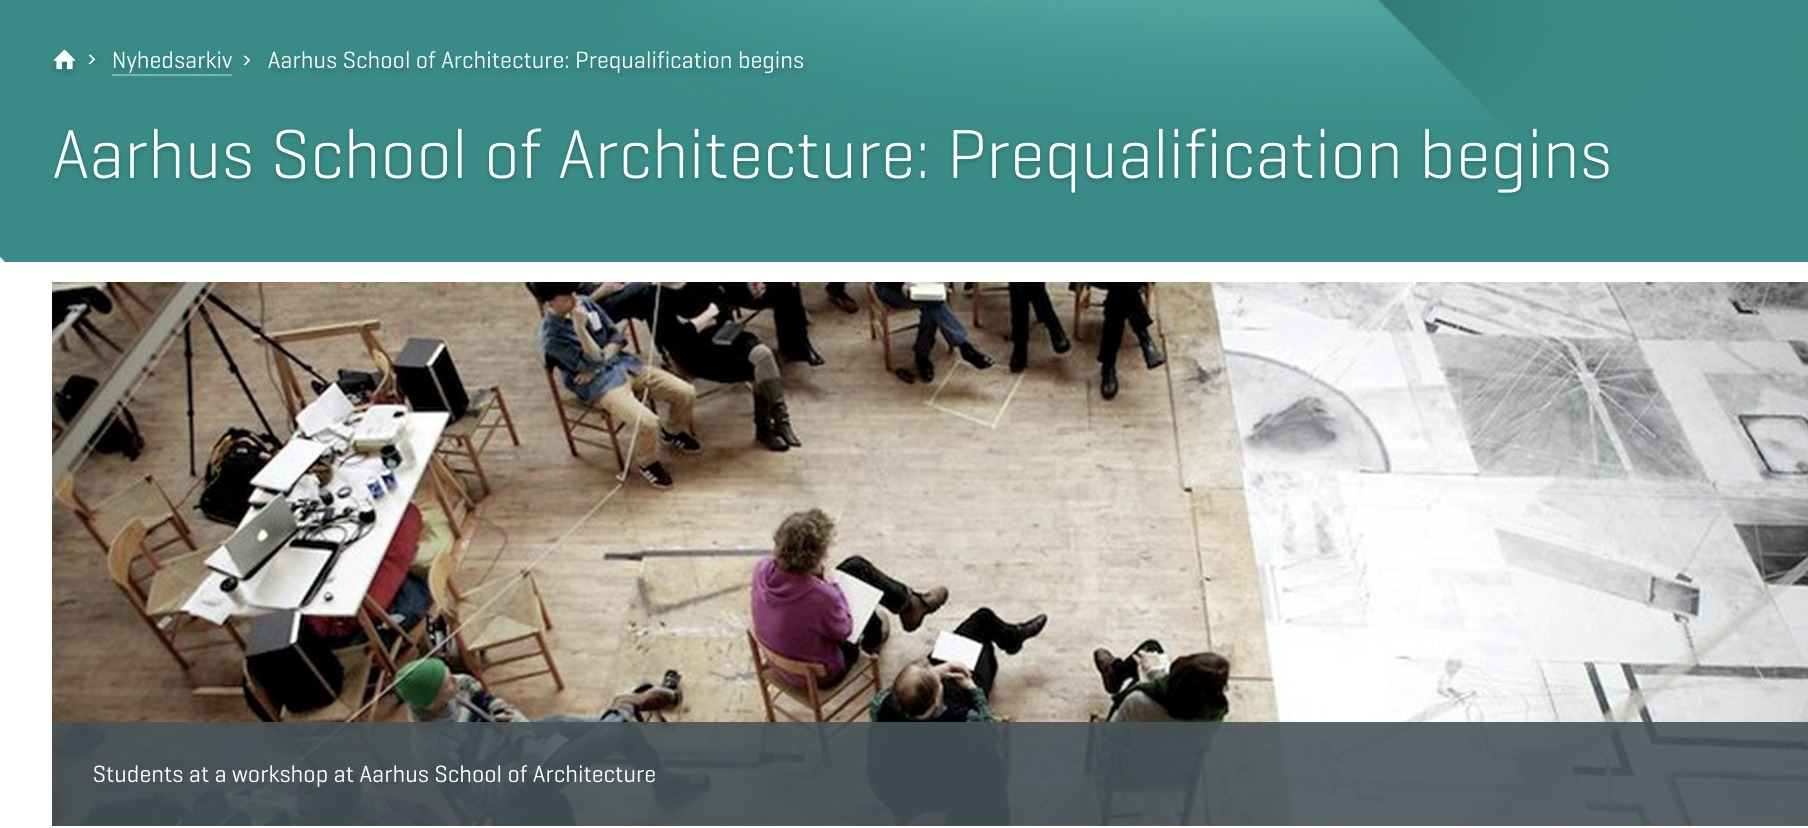 Are you an architect or arch grad student?